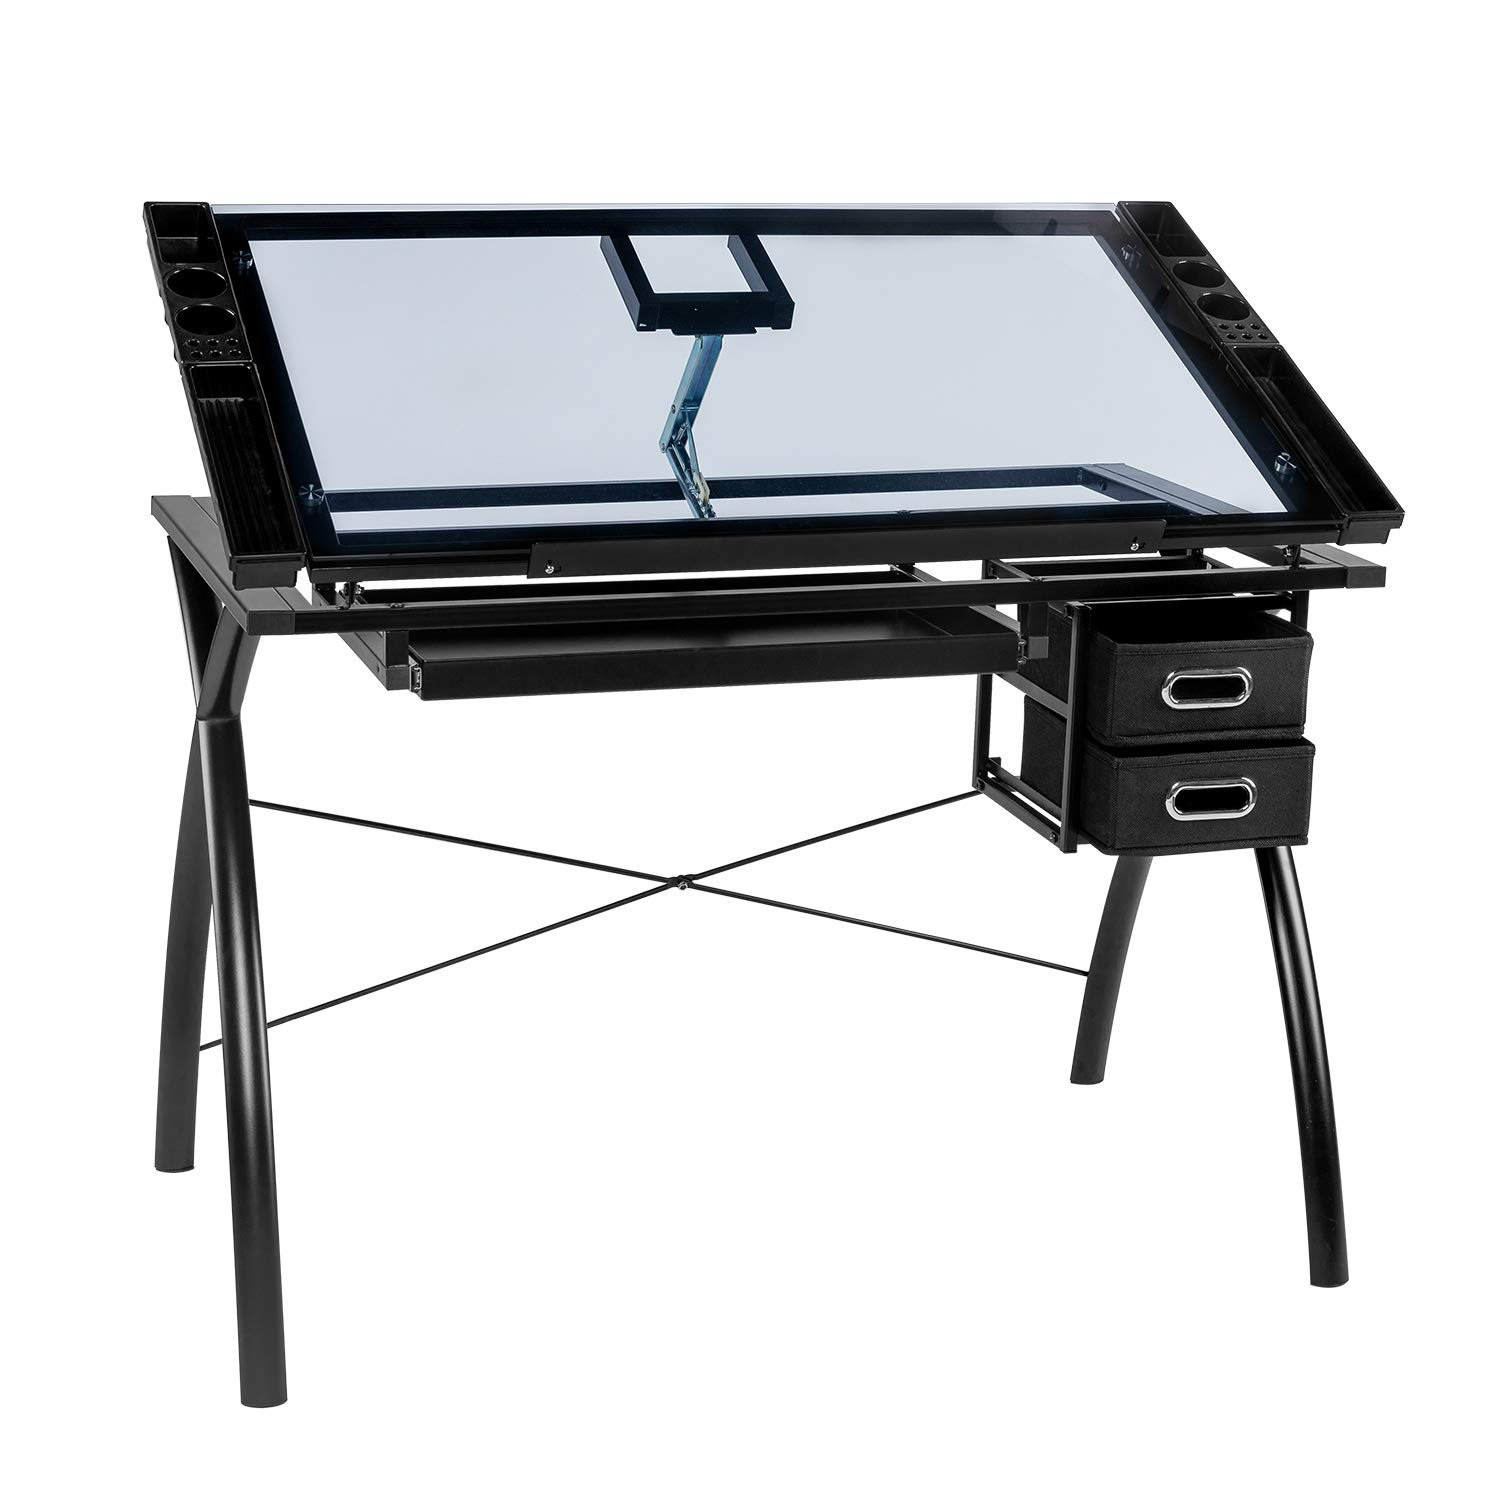 BAHOM Adjustable Drafting Table Glass Top, Art Drawing Craft Desk with 2 Drawers, Perfect for Artwork and Design, Black by BAHOM